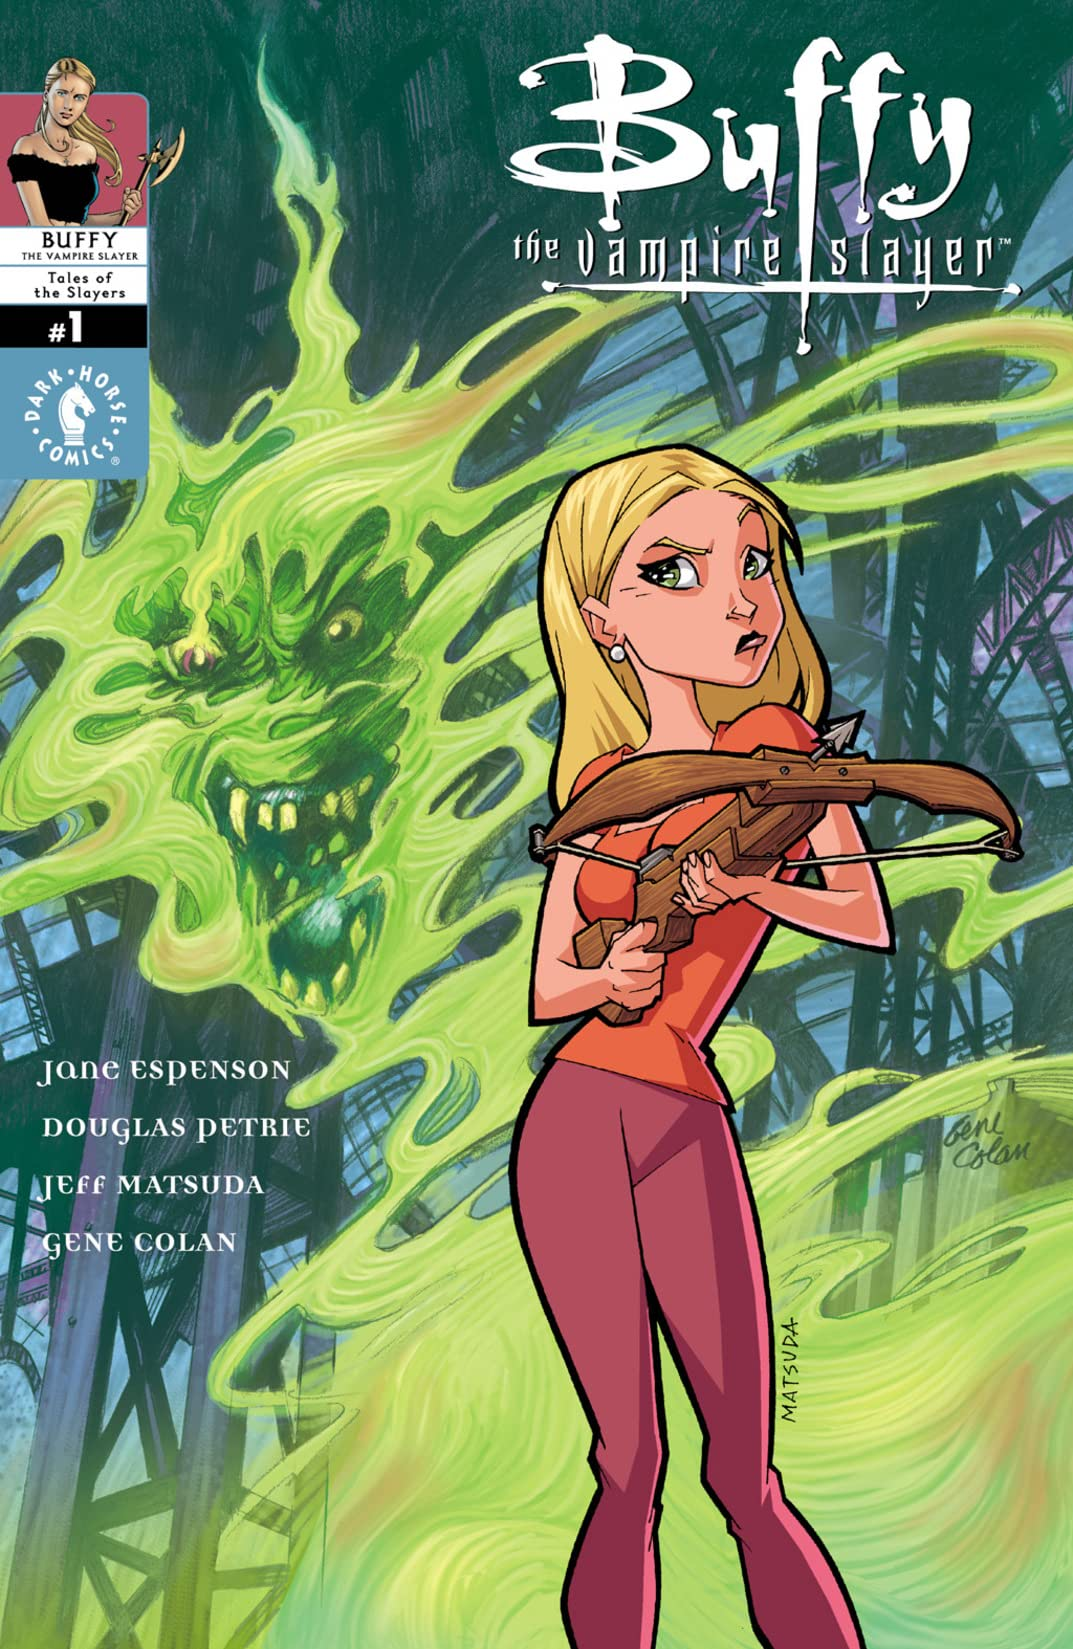 Buffy the Vampire Slayer Classic: Tales of the Slayers #1